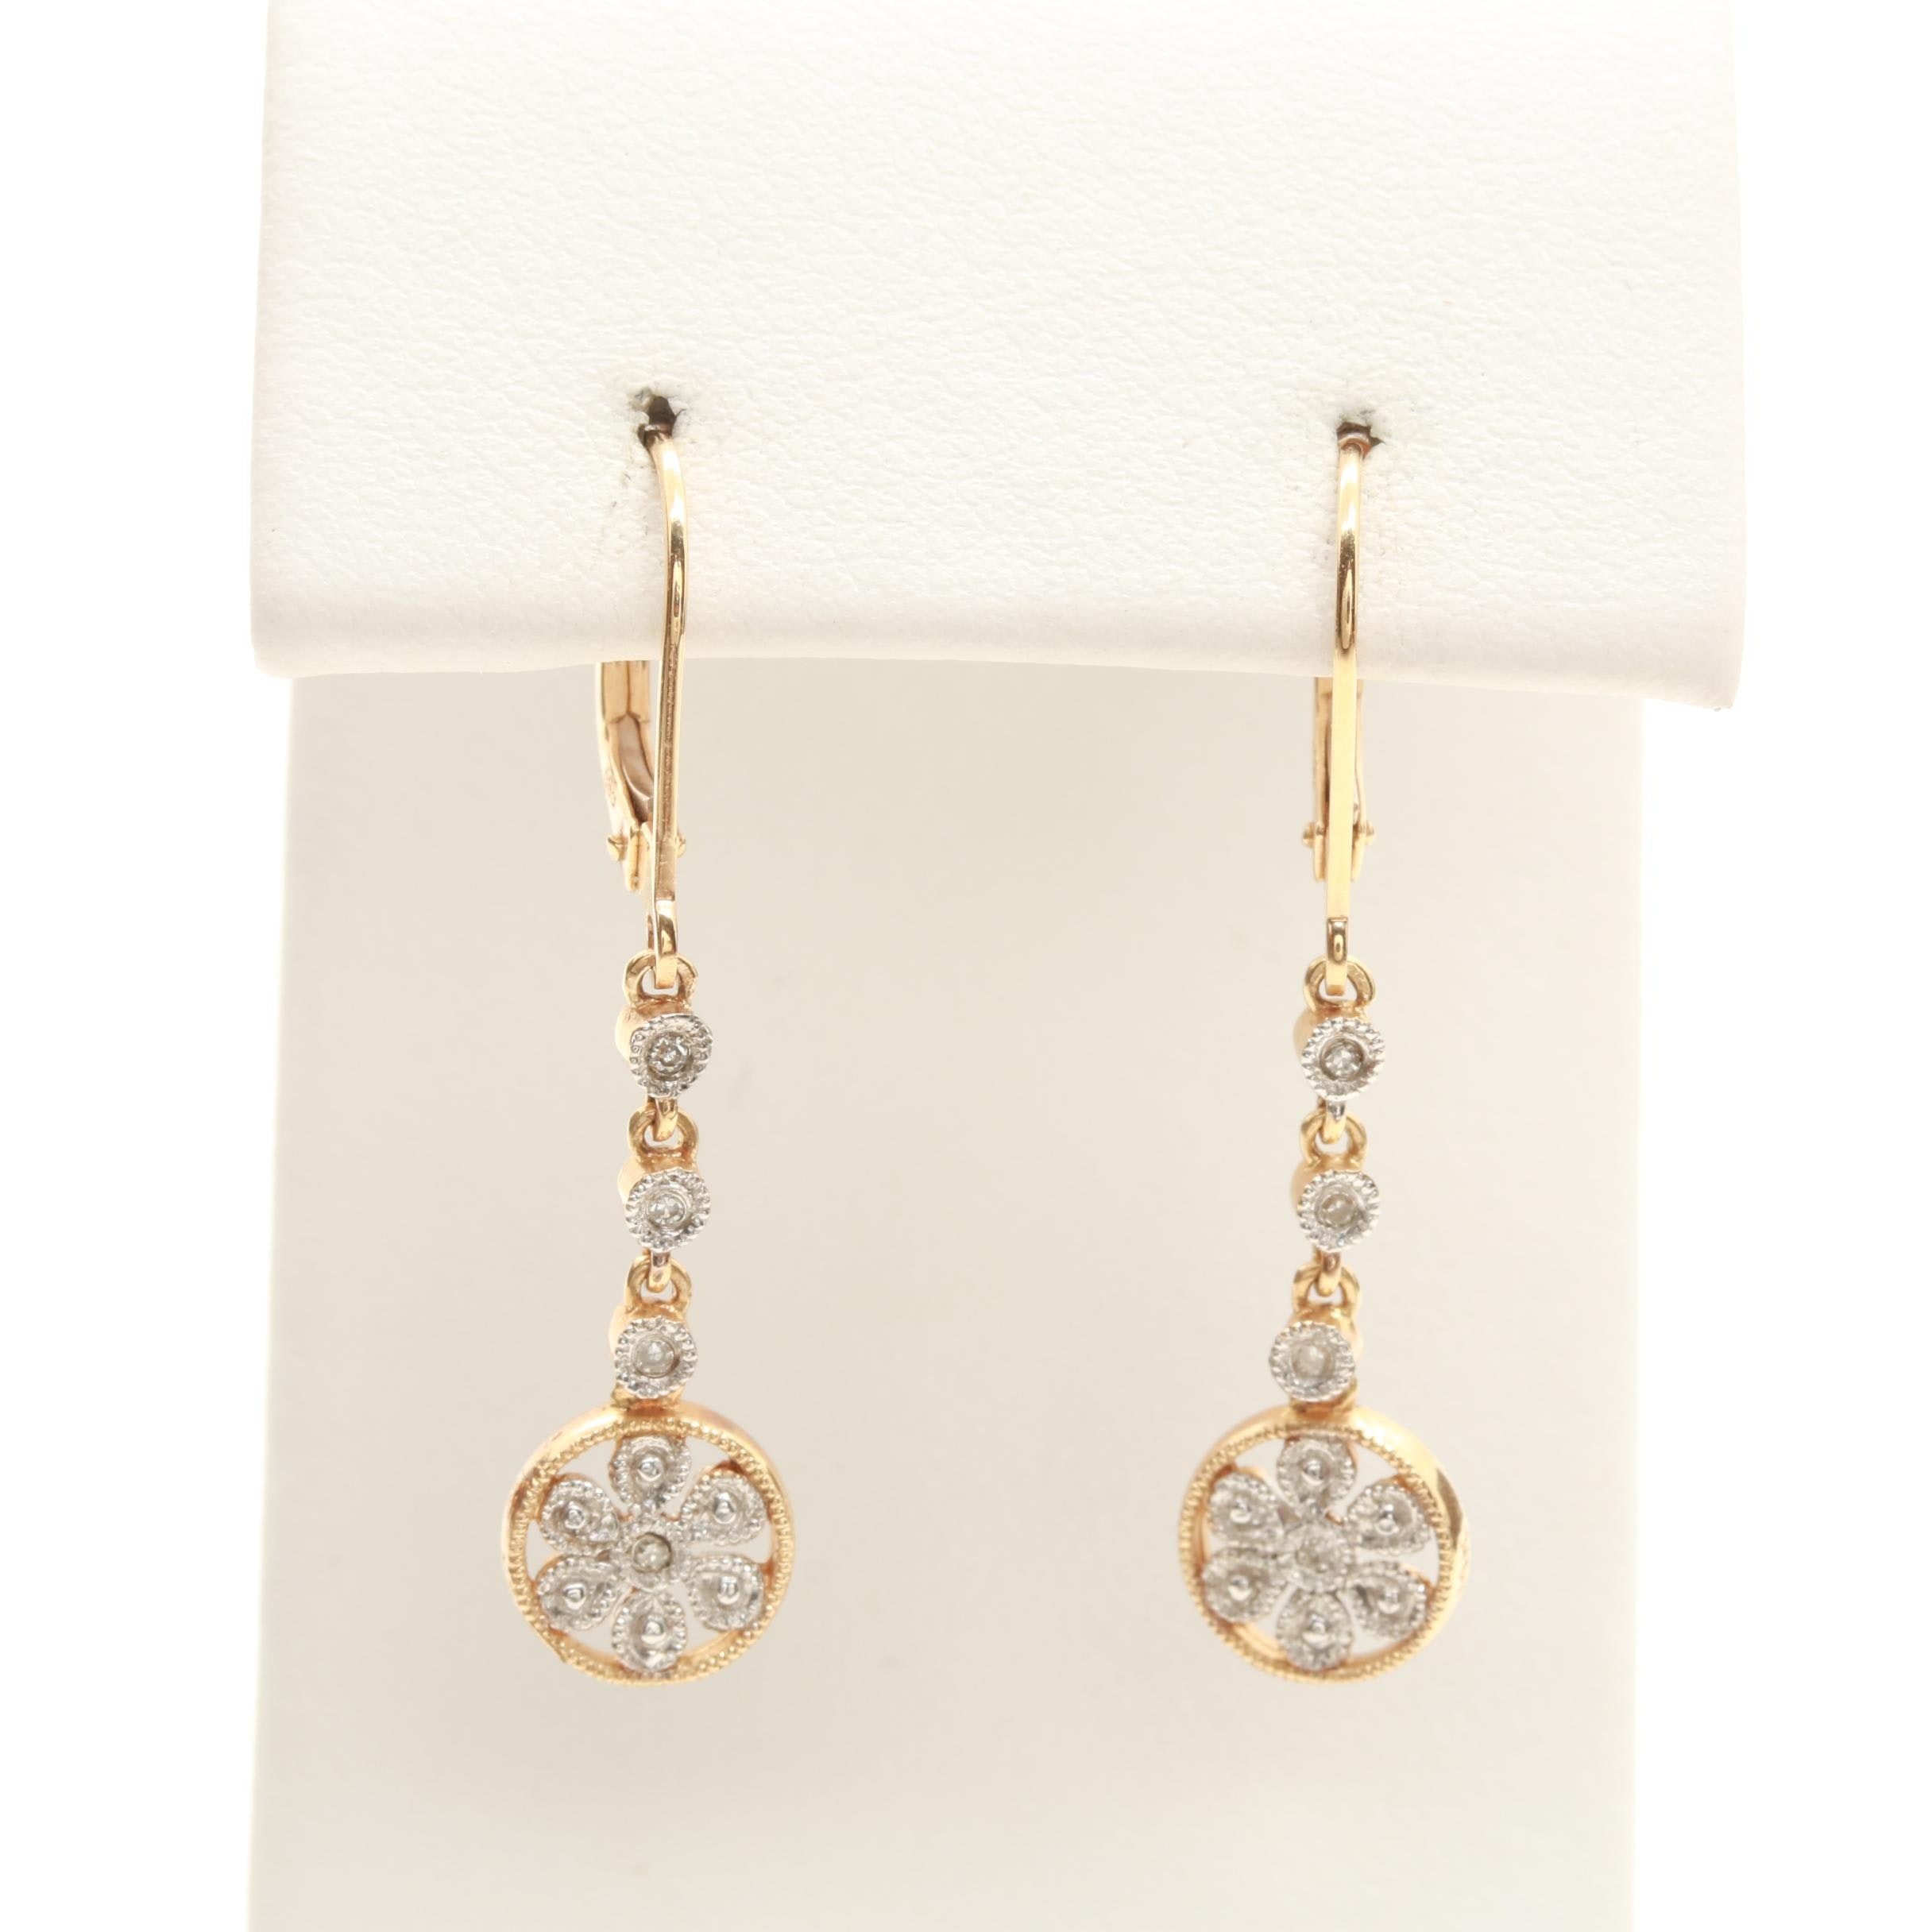 14K Yellow Gold Diamond Earrings with White Gold Accents